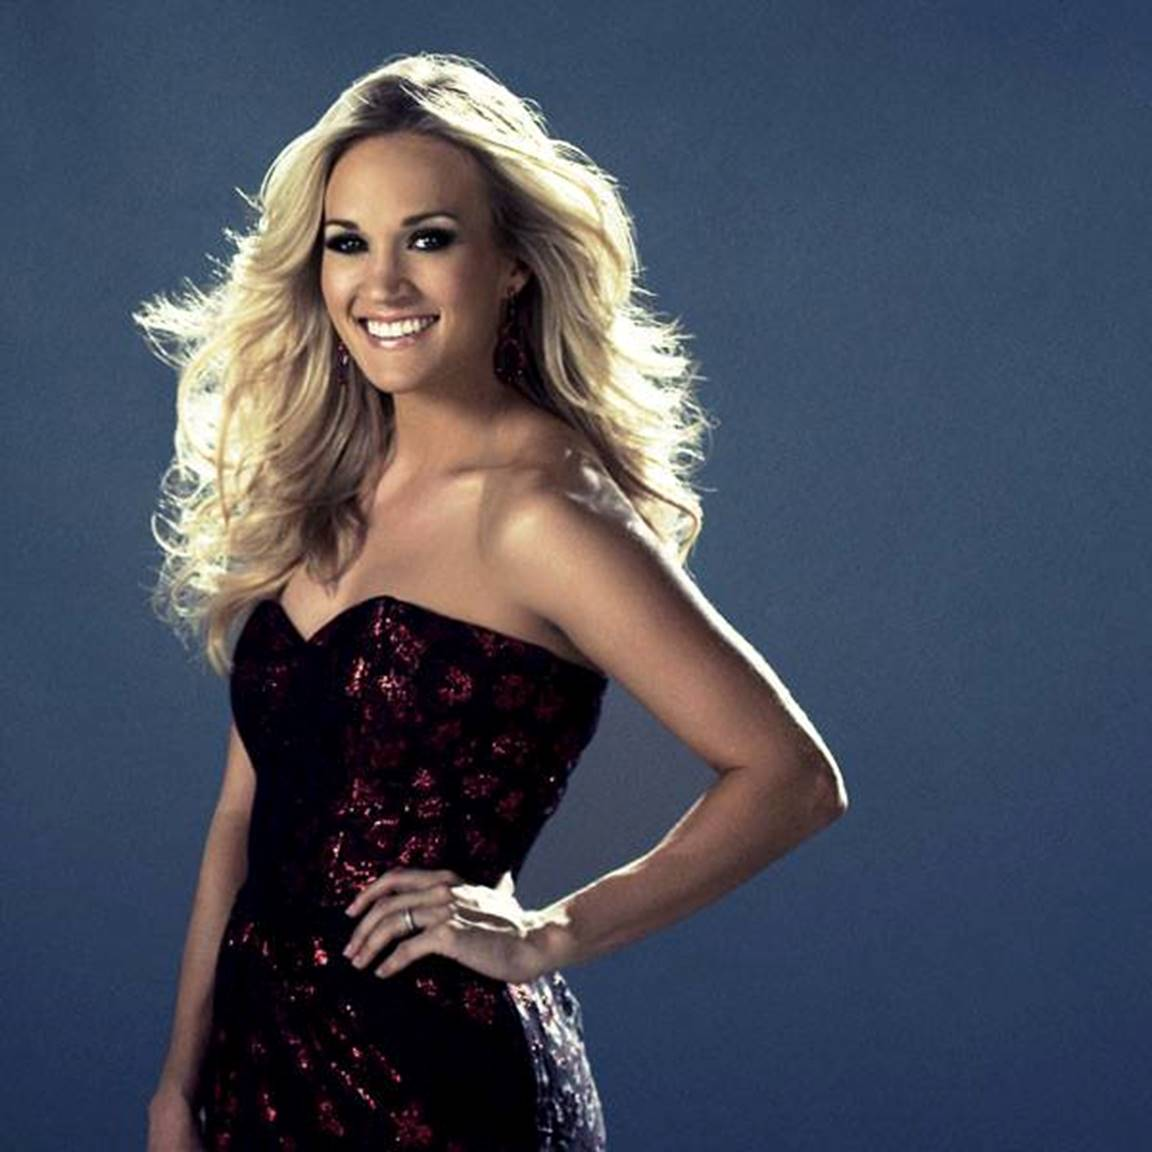 Carrie Underwood in Dress